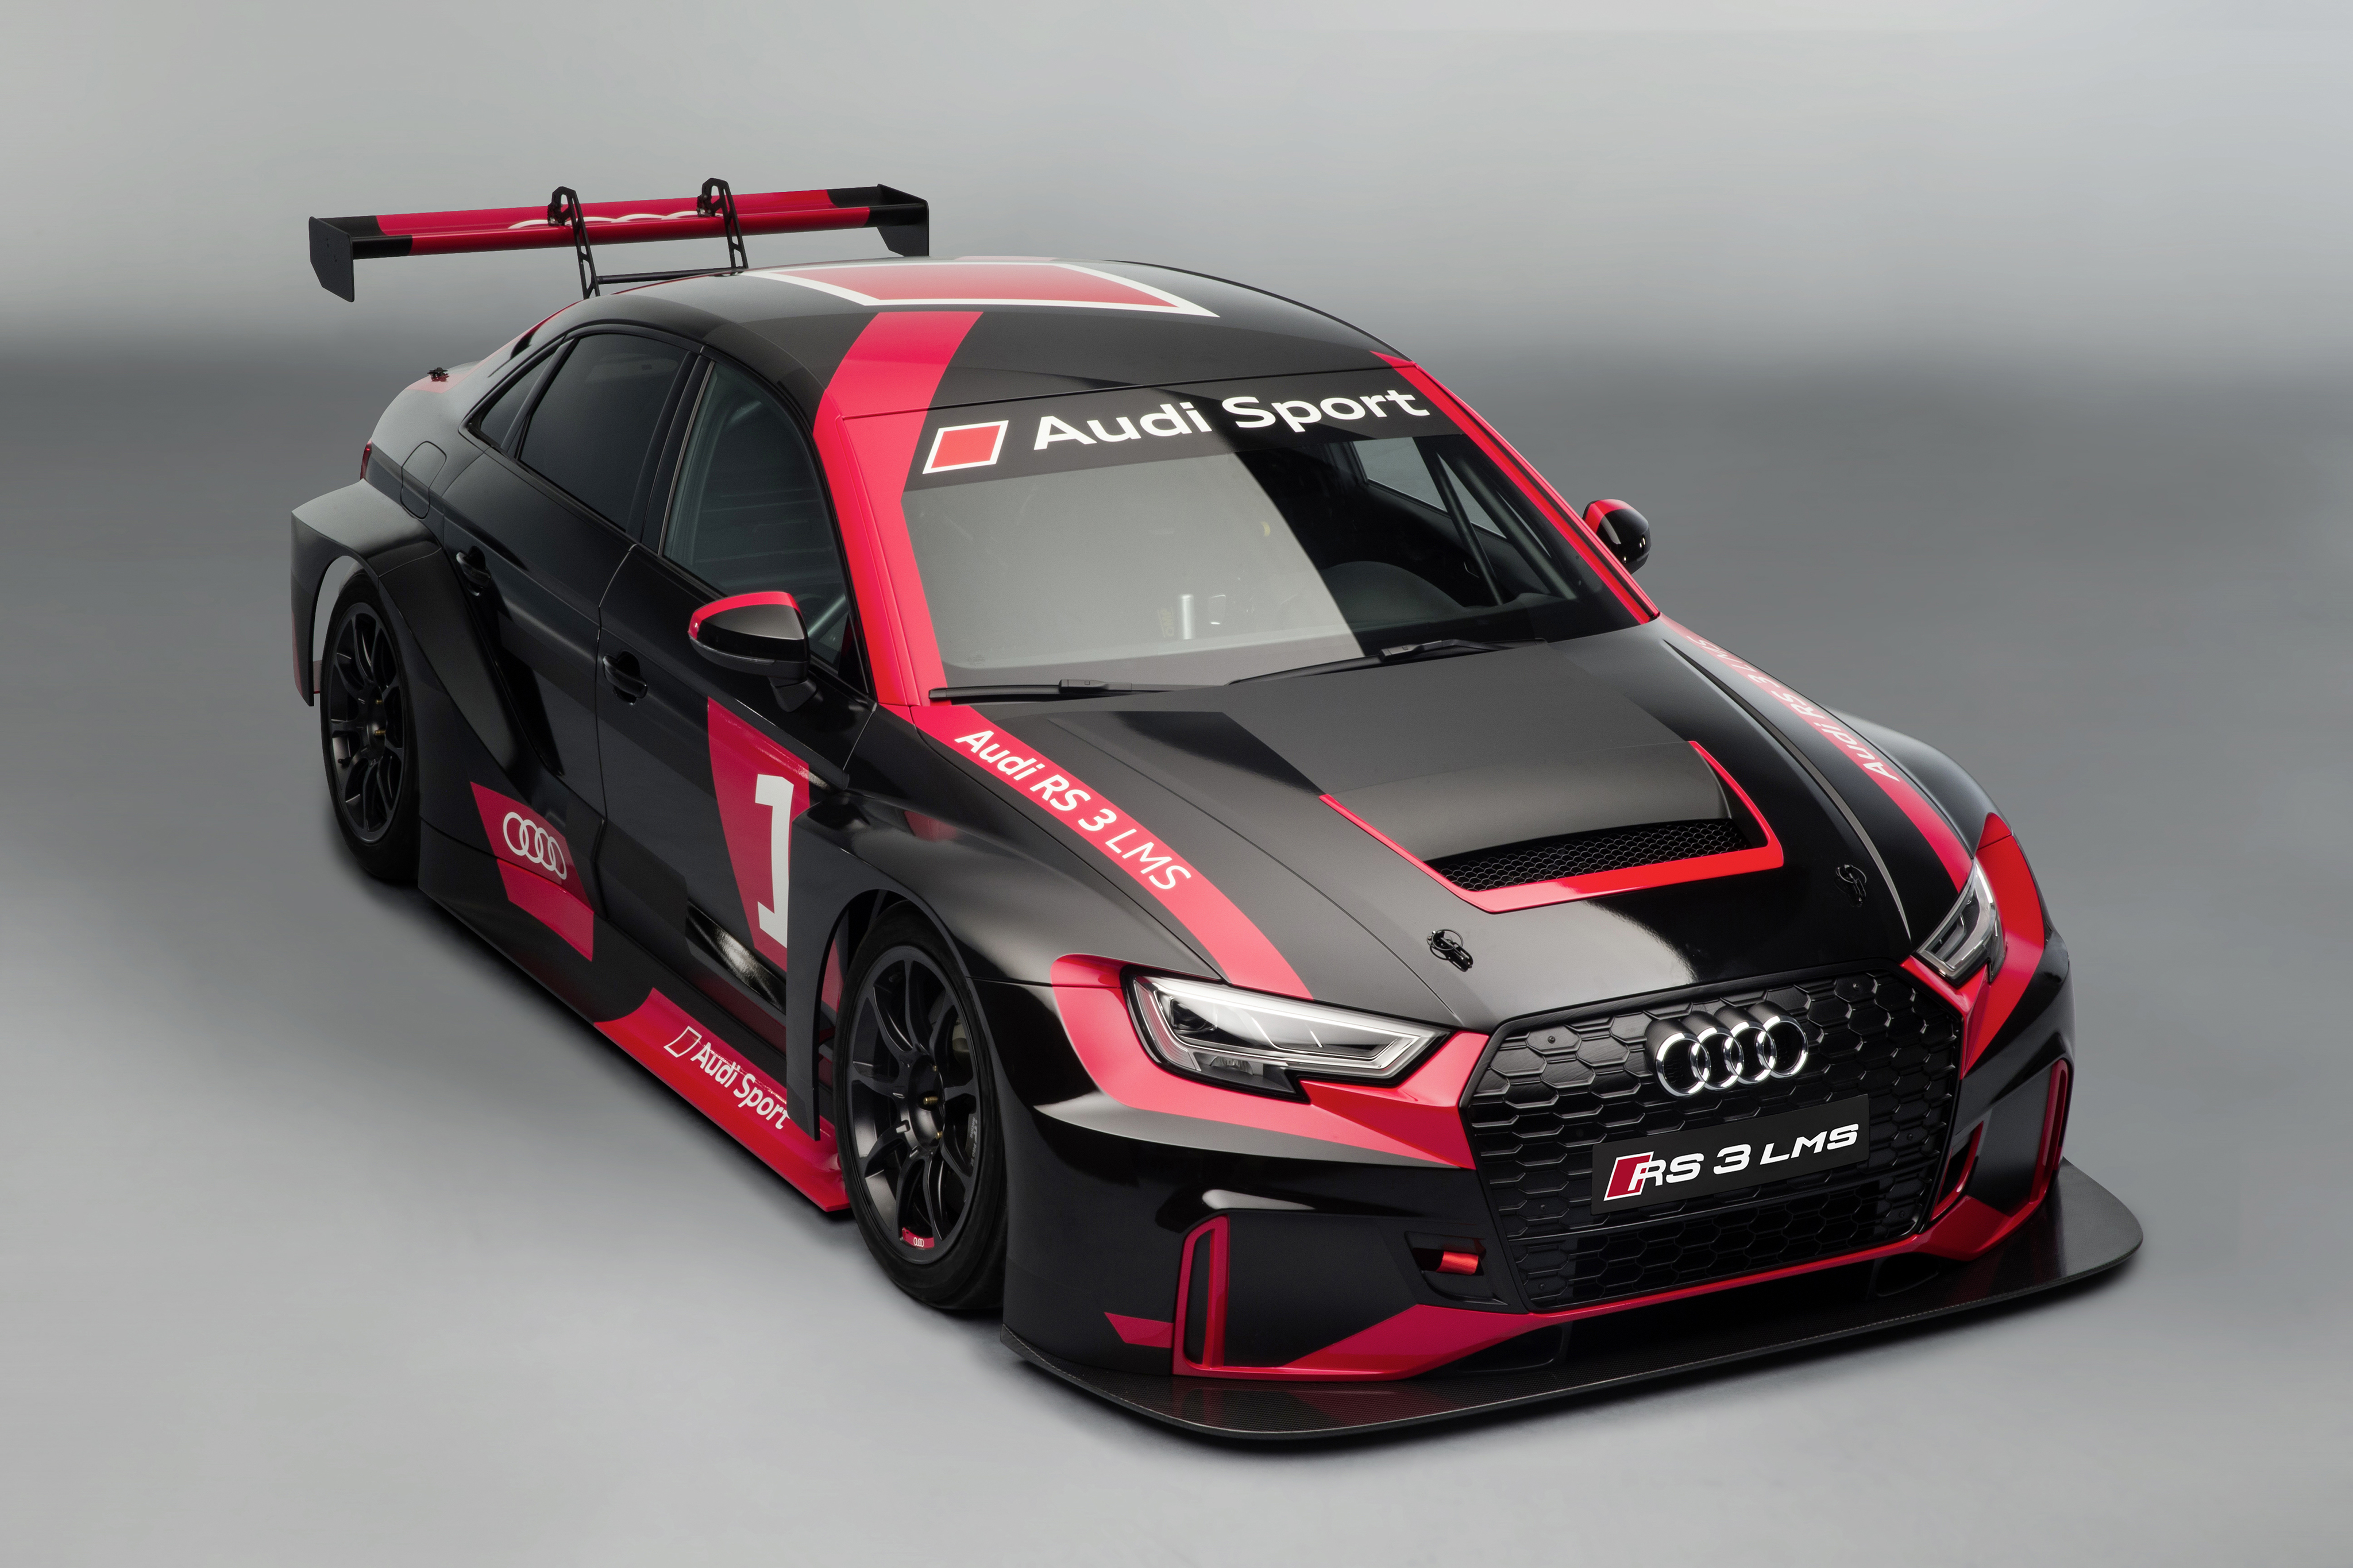 Audi Rs3 4k Ultra Hd Wallpaper Background Image 4096x2730 Id 778799 Wallpaper Abyss